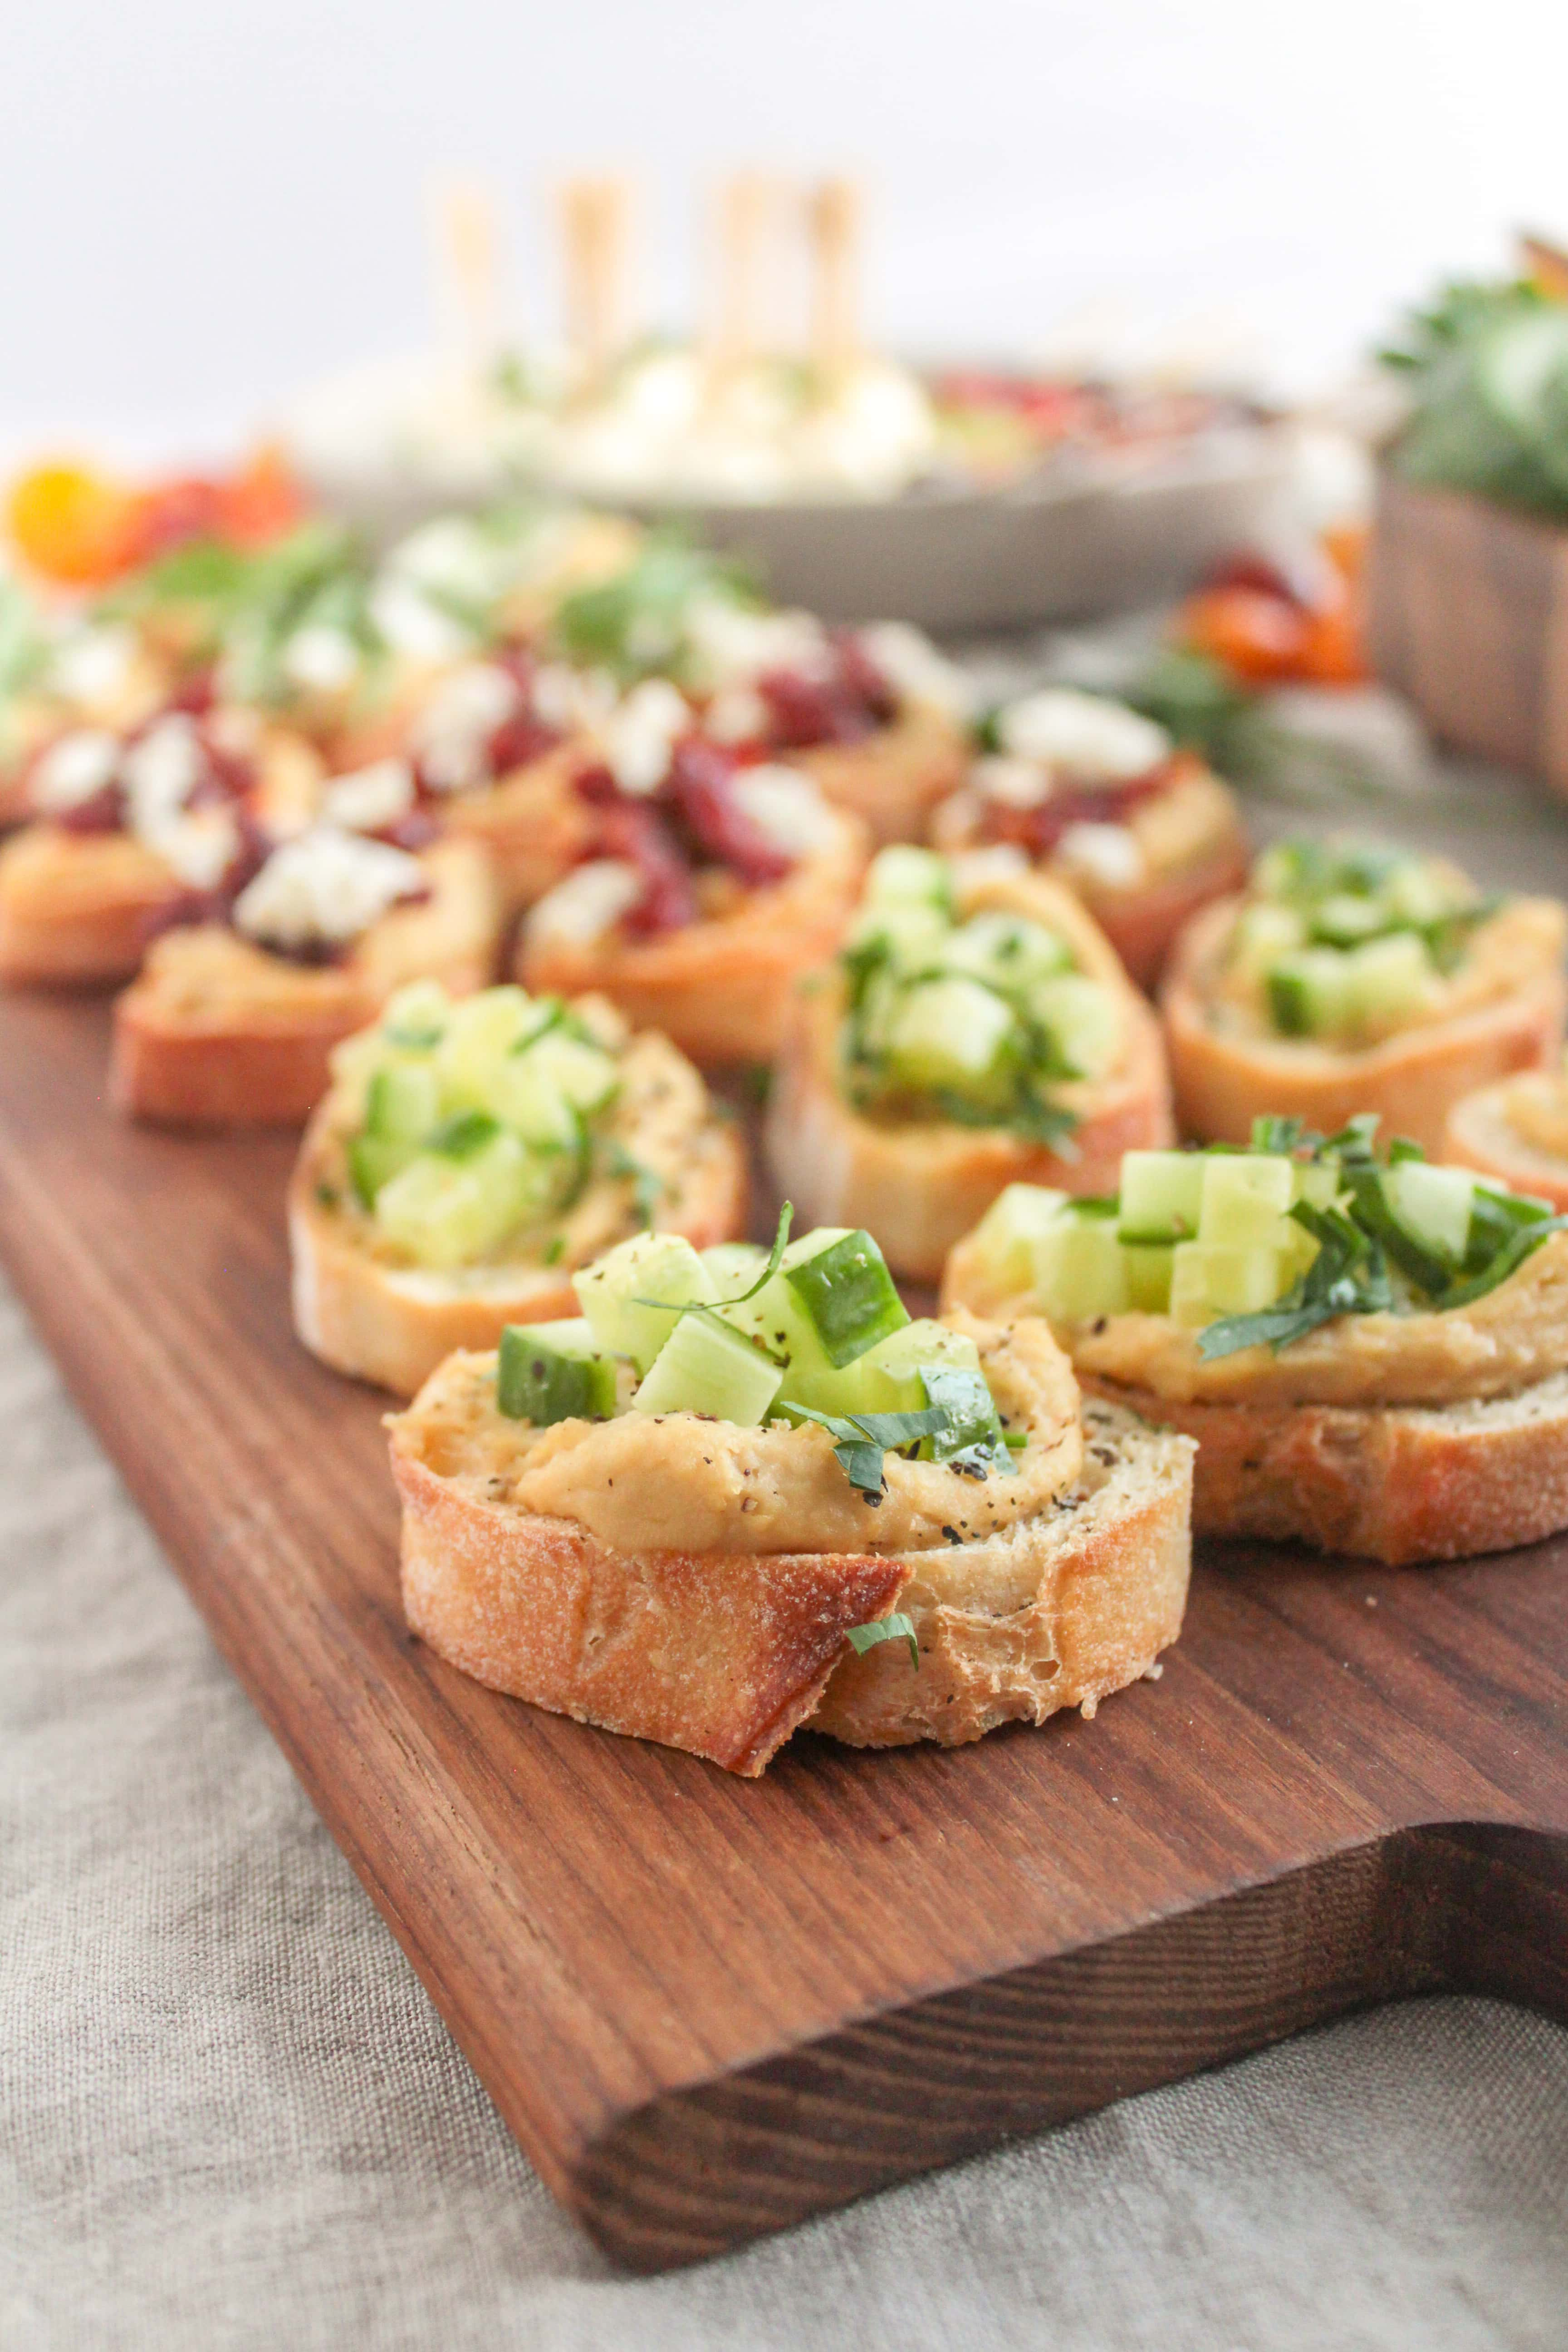 Healthy throw together super bowl snacks ideas fannetastic food healthy superbowl snack ideas from registered dietitian anne mauney of fannetasticfood forumfinder Choice Image